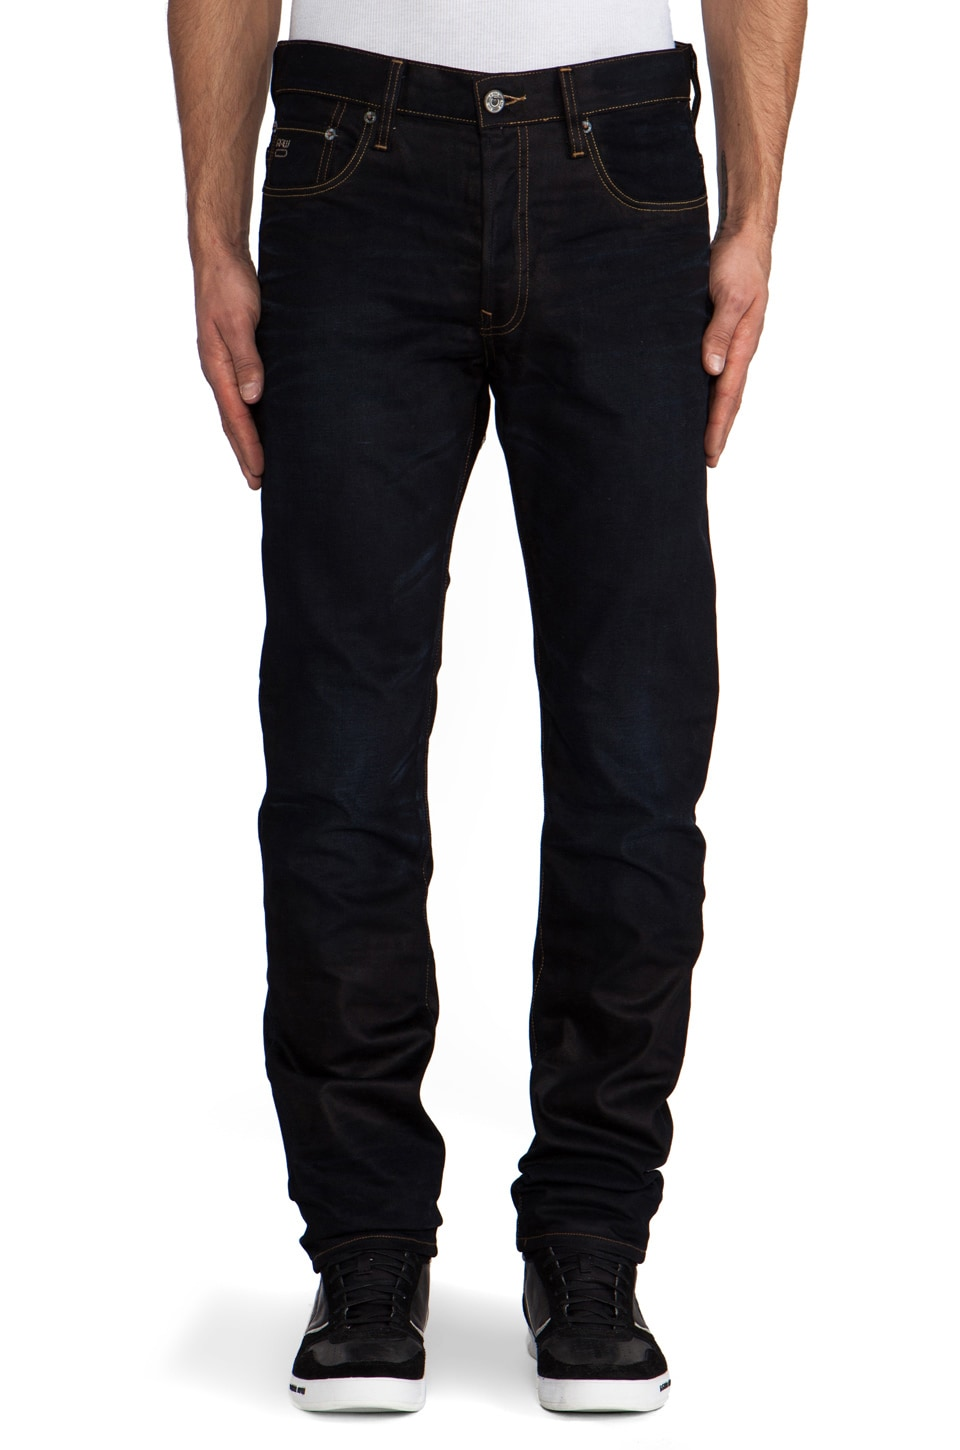 G-Star 3301 Straight in Lexicon Denim Indigo Aged